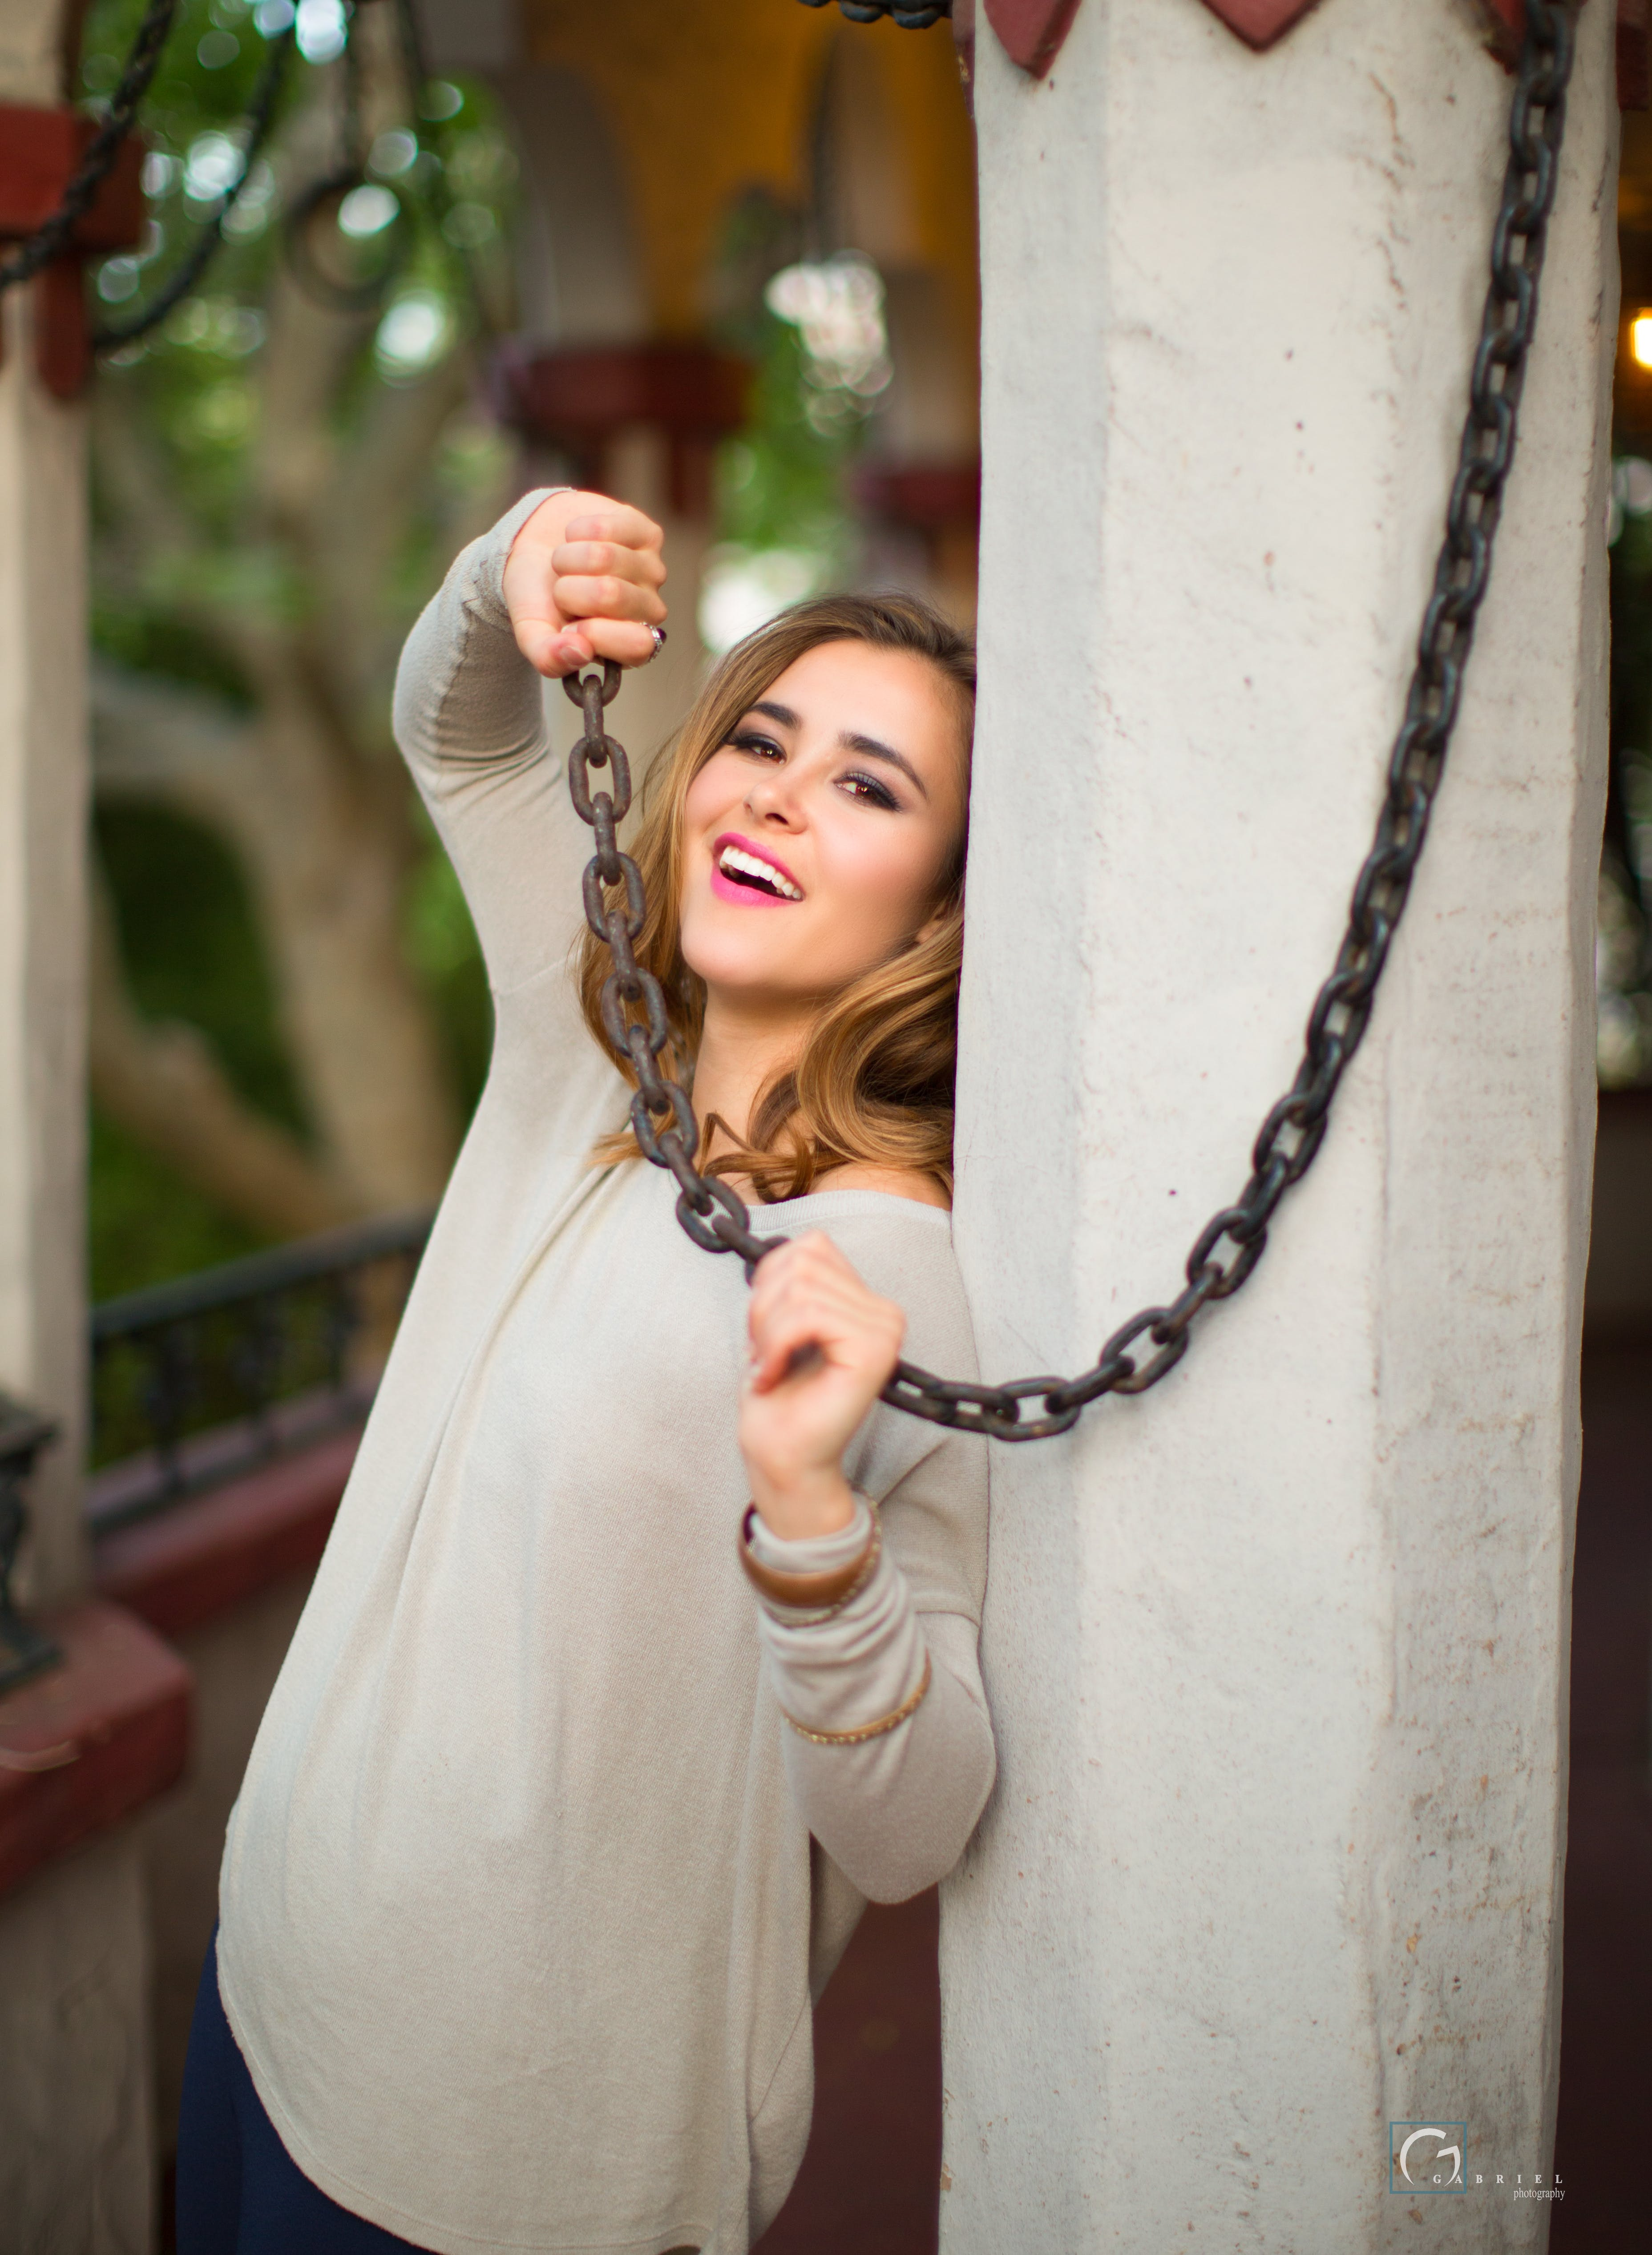 Woman Leaning on Wall While Holding a Chain